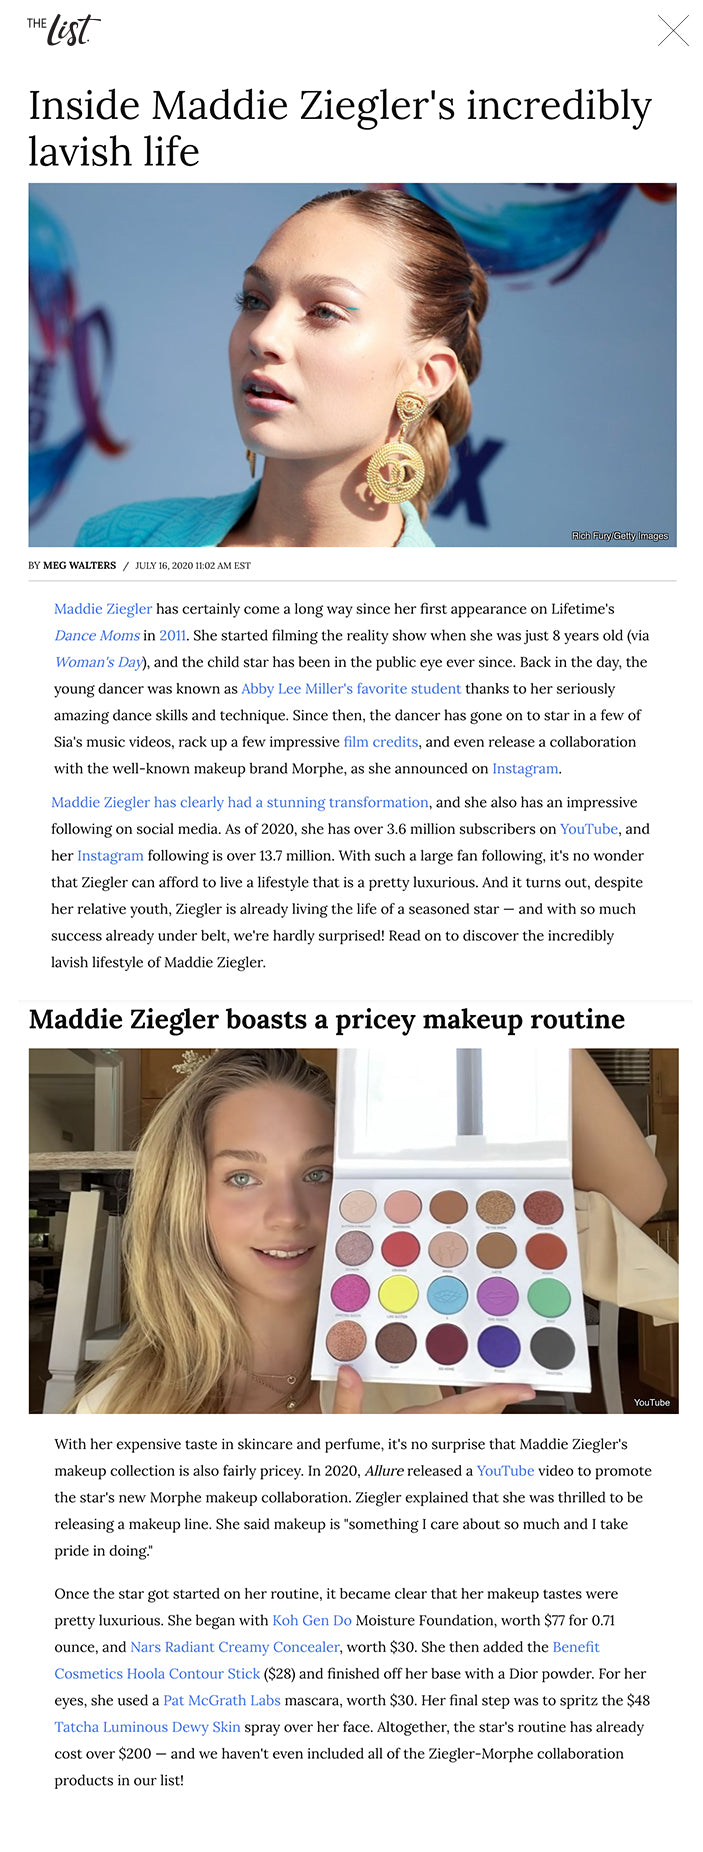 """Inside Maddie Ziegler's incredibly lavish life Rich Fury/Getty Images BYMEG WALTERS/JULY 16, 2020 11:02 AM EST Maddie Ziegler has certainly come a long way since her first appearance on Lifetime's Dance Moms in 2011.She started filming the reality show when she was just 8 years old (via Woman's Day), and the child star has been in the public eye ever since. Back in the day, the young dancer was known asAbby Lee Miller's favorite studentthanks to her seriously amazing dance skills and technique. Since then, the dancer has gone on to star in a few of Sia's music videos, rack up a few impressive film credits, and even release a collaboration with the well-known makeup brand Morphe, as she announced on Instagram.   Maddie Ziegler has clearly had a stunning transformation, and she also has an impressive following on social media. As of 2020, she has over 3.6 million subscribers onYouTube,and her Instagram following is over 13.7 million. With such a large fan following, it's no wonder that Ziegler can afford to live a lifestyle that is a pretty luxurious. And it turns out, despite her relative youth, Ziegler is already living the life of a seasoned star — and with so much success already under belt, we're hardly surprised! Read on to discover the incredibly lavish lifestyle of Maddie Ziegler.  Maddie Ziegler has a pretty impressive net worth Michael Tullberg/Getty Images Maddie Ziegler has been in the public eye sinceDance Moms began airing on Lifetime. Since then, Ziegler has managed to rake in a jaw-dropping amount of cash. In 2017,Romperdid some detective work and investigated Ziegler's various sources of income. According to the publication, Ziegler would have made $2,000 per episode ofDance Moms, giving her a total of $400,000 for the show. While it's unknown how much money Ziegler made from her appearances in Sia's music videos — which have included """"Cheap Thrills,"""" """"ElasticHeart,"""" """"Big Girls Cry,"""" and more –The Blastreported that Ziegler received an $85,000 pay che"""